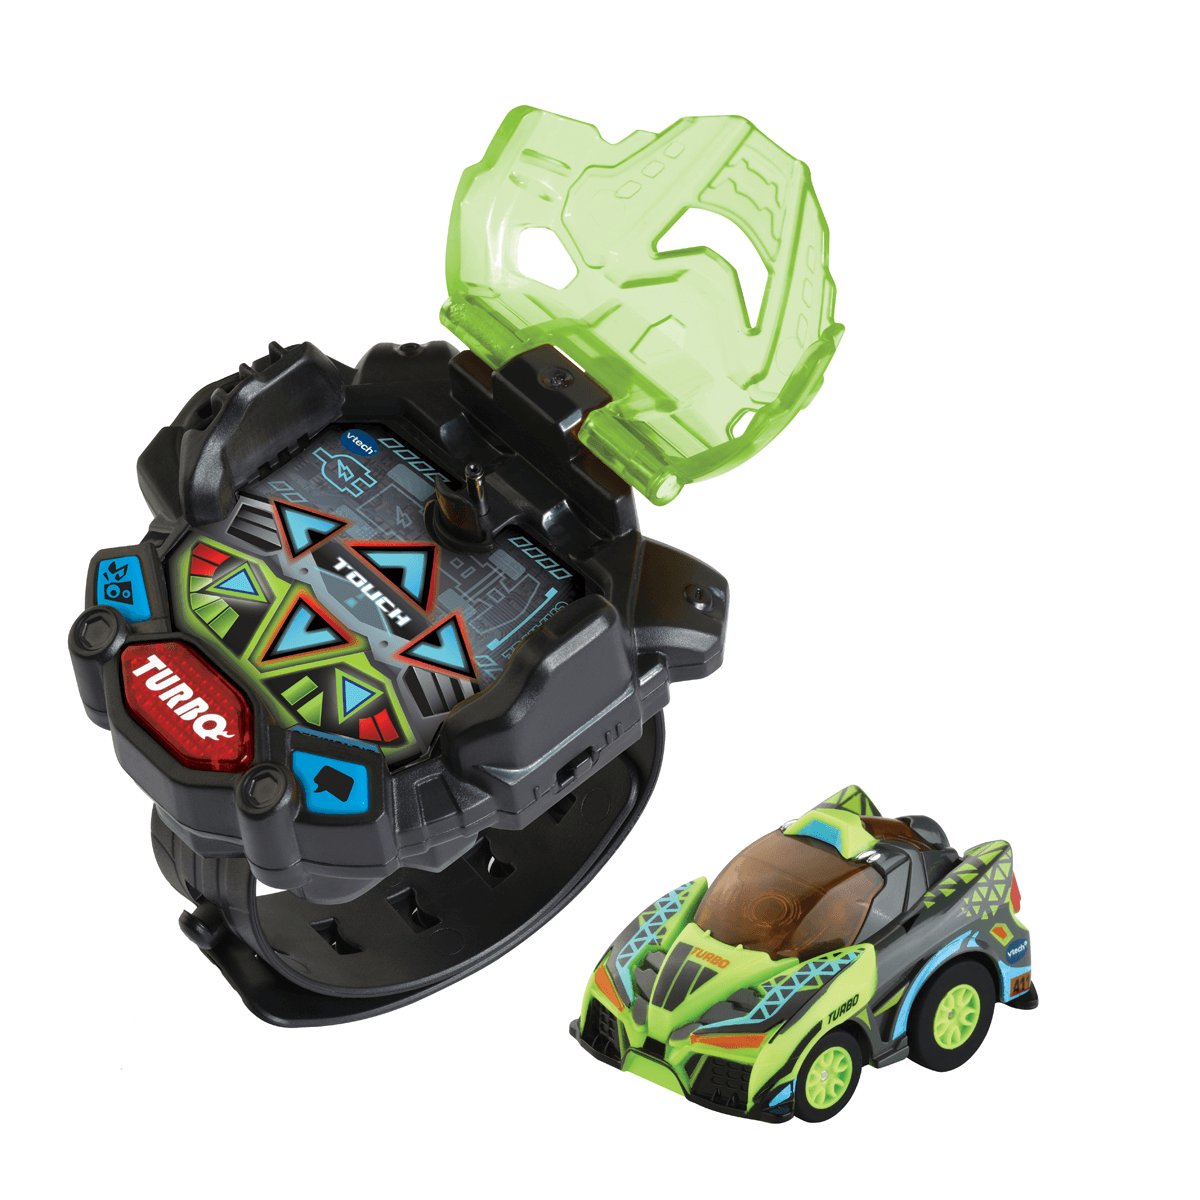 VTech Turbo Force Racers - Green from Early Learning Center